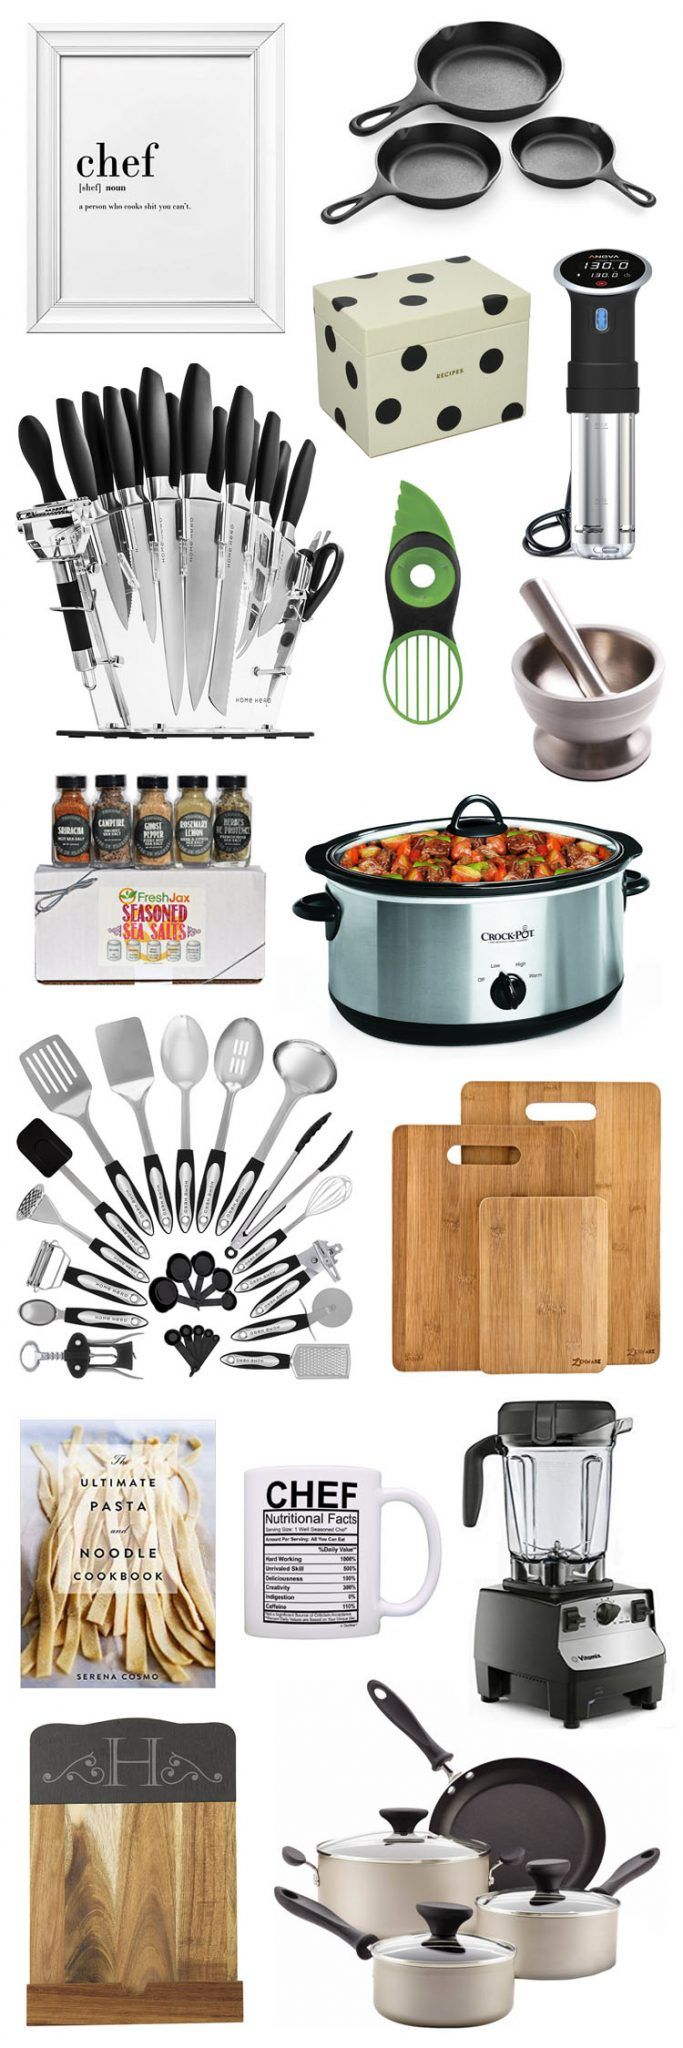 Gifts for Chefs/Cooks | Gifts for Chefs | Gifts for Cooks | Cooking Gifts | Cooking Presents | Christmas Gifts for Cooks | Gifts to Buy a Chef | Chef Presents | What to Buy a Cook | What to Buy a Chef | Chef Gift Ideas Men | Chef Gift Ideas Women | Chef Gift Basket Ideas | Cooking Gift Baskets | Kitchen Gadget Gifts | Cooking Gifts for Kids | Chef Gifts for Christmas | Birthday Cooking Gifts | Gift Ideas | Gifts | Presents | Birthday | Christmas